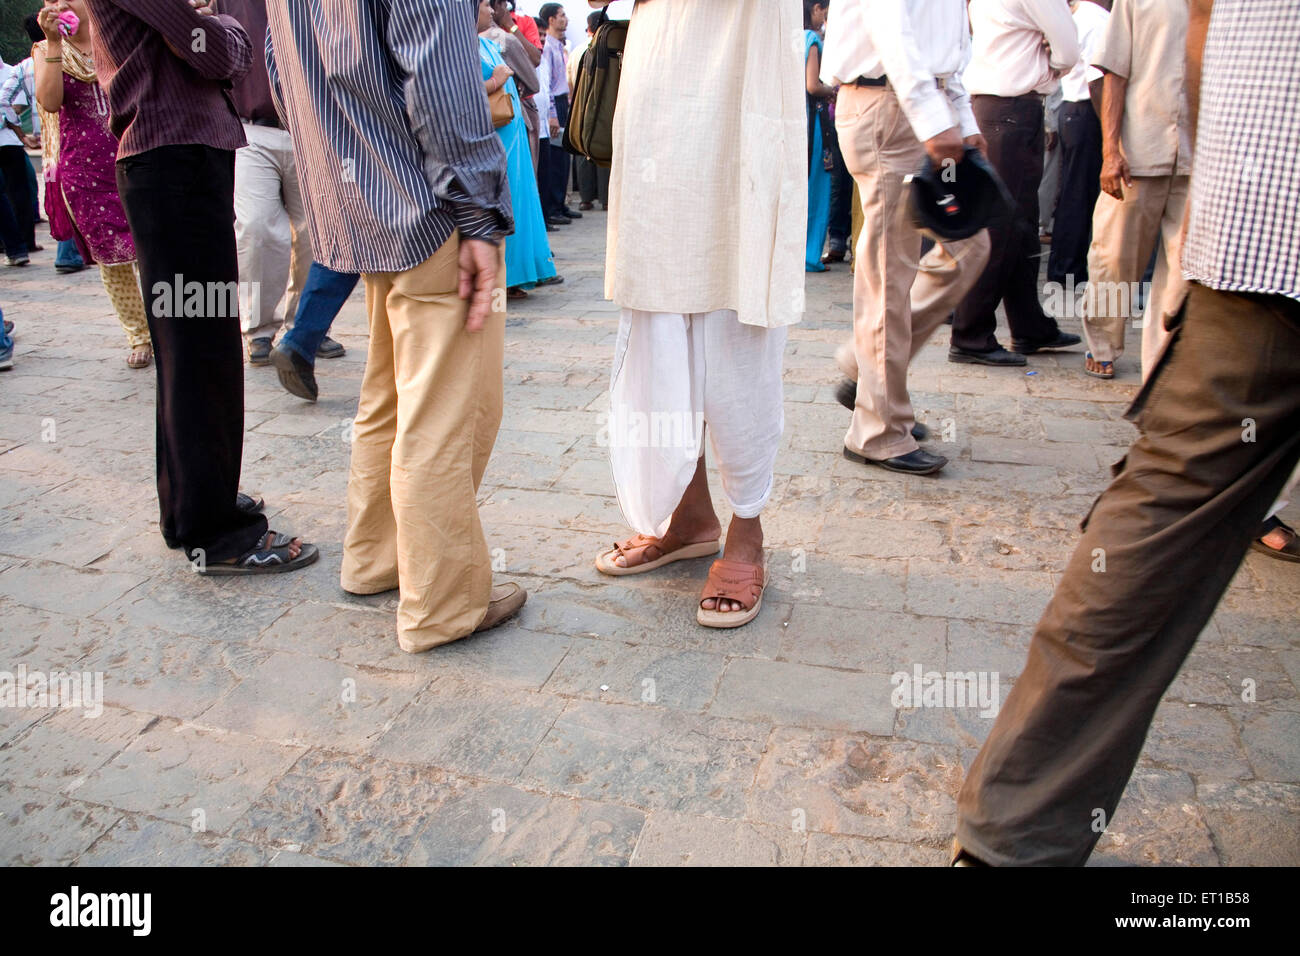 3rd December ; people Gateway protesting against terror attacks on 26th November 2008 in Bombay - Stock Image